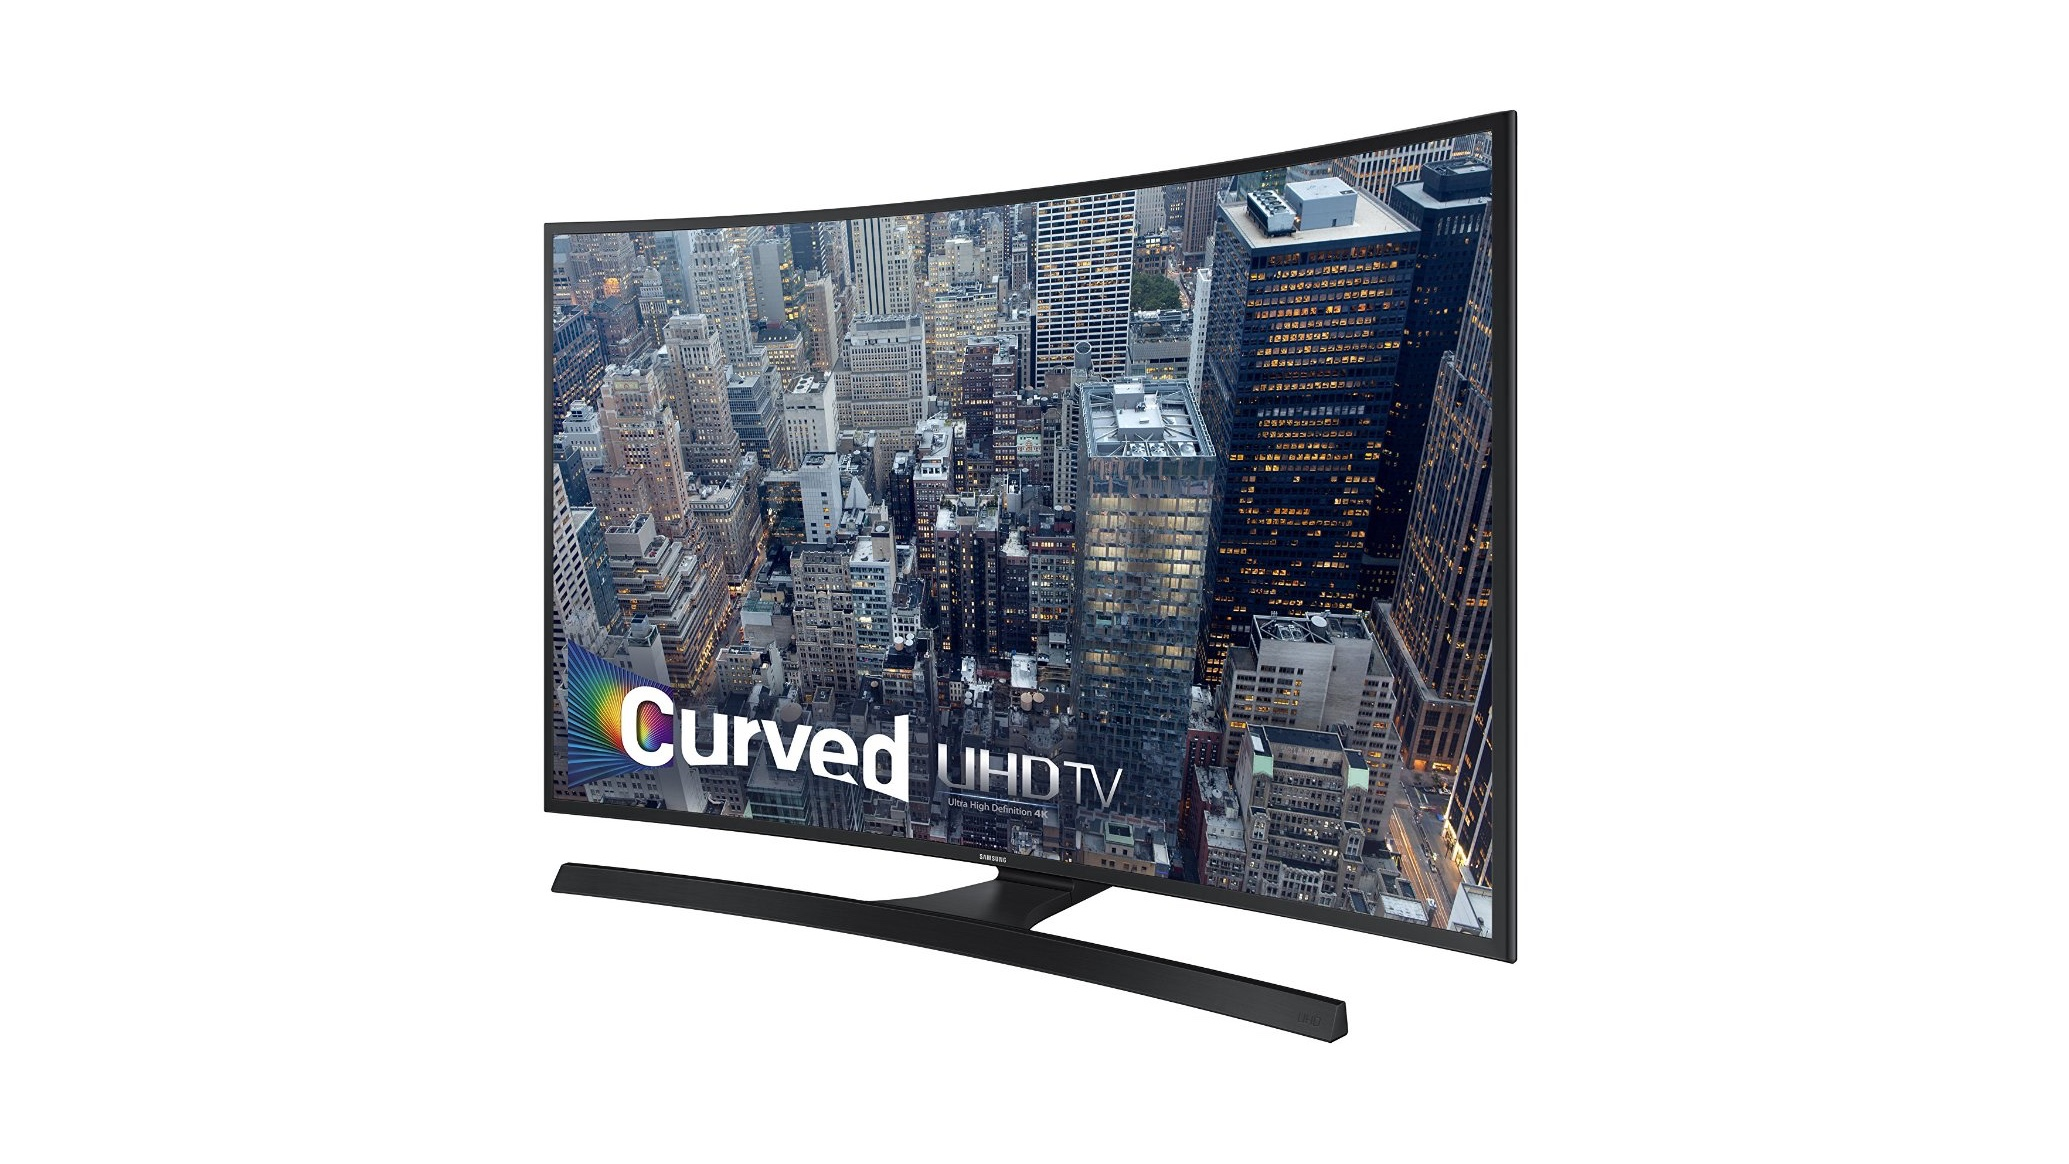 7 best curved tvs in 2016 top rated curved oled tvs by samsung lg. Black Bedroom Furniture Sets. Home Design Ideas